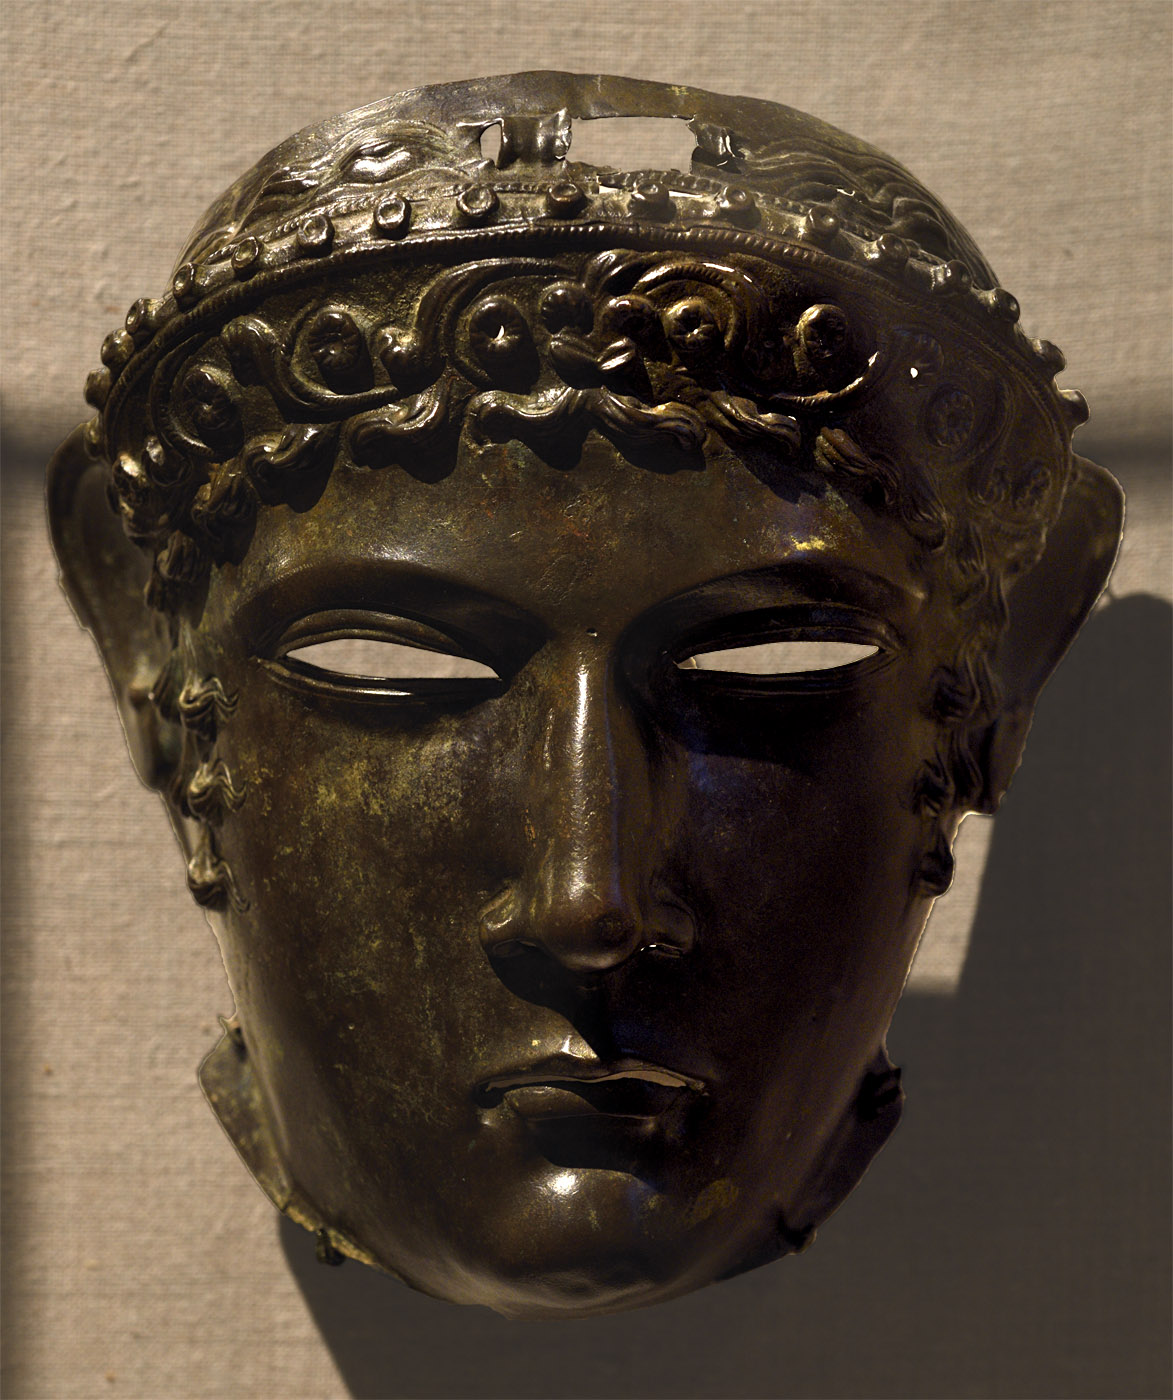 Bronze cavalry sports mask. Roman, 2nd cent. CE. Inv. No. Инв. № L.2007.8.1. New York, the Metropolitan Museum of Art